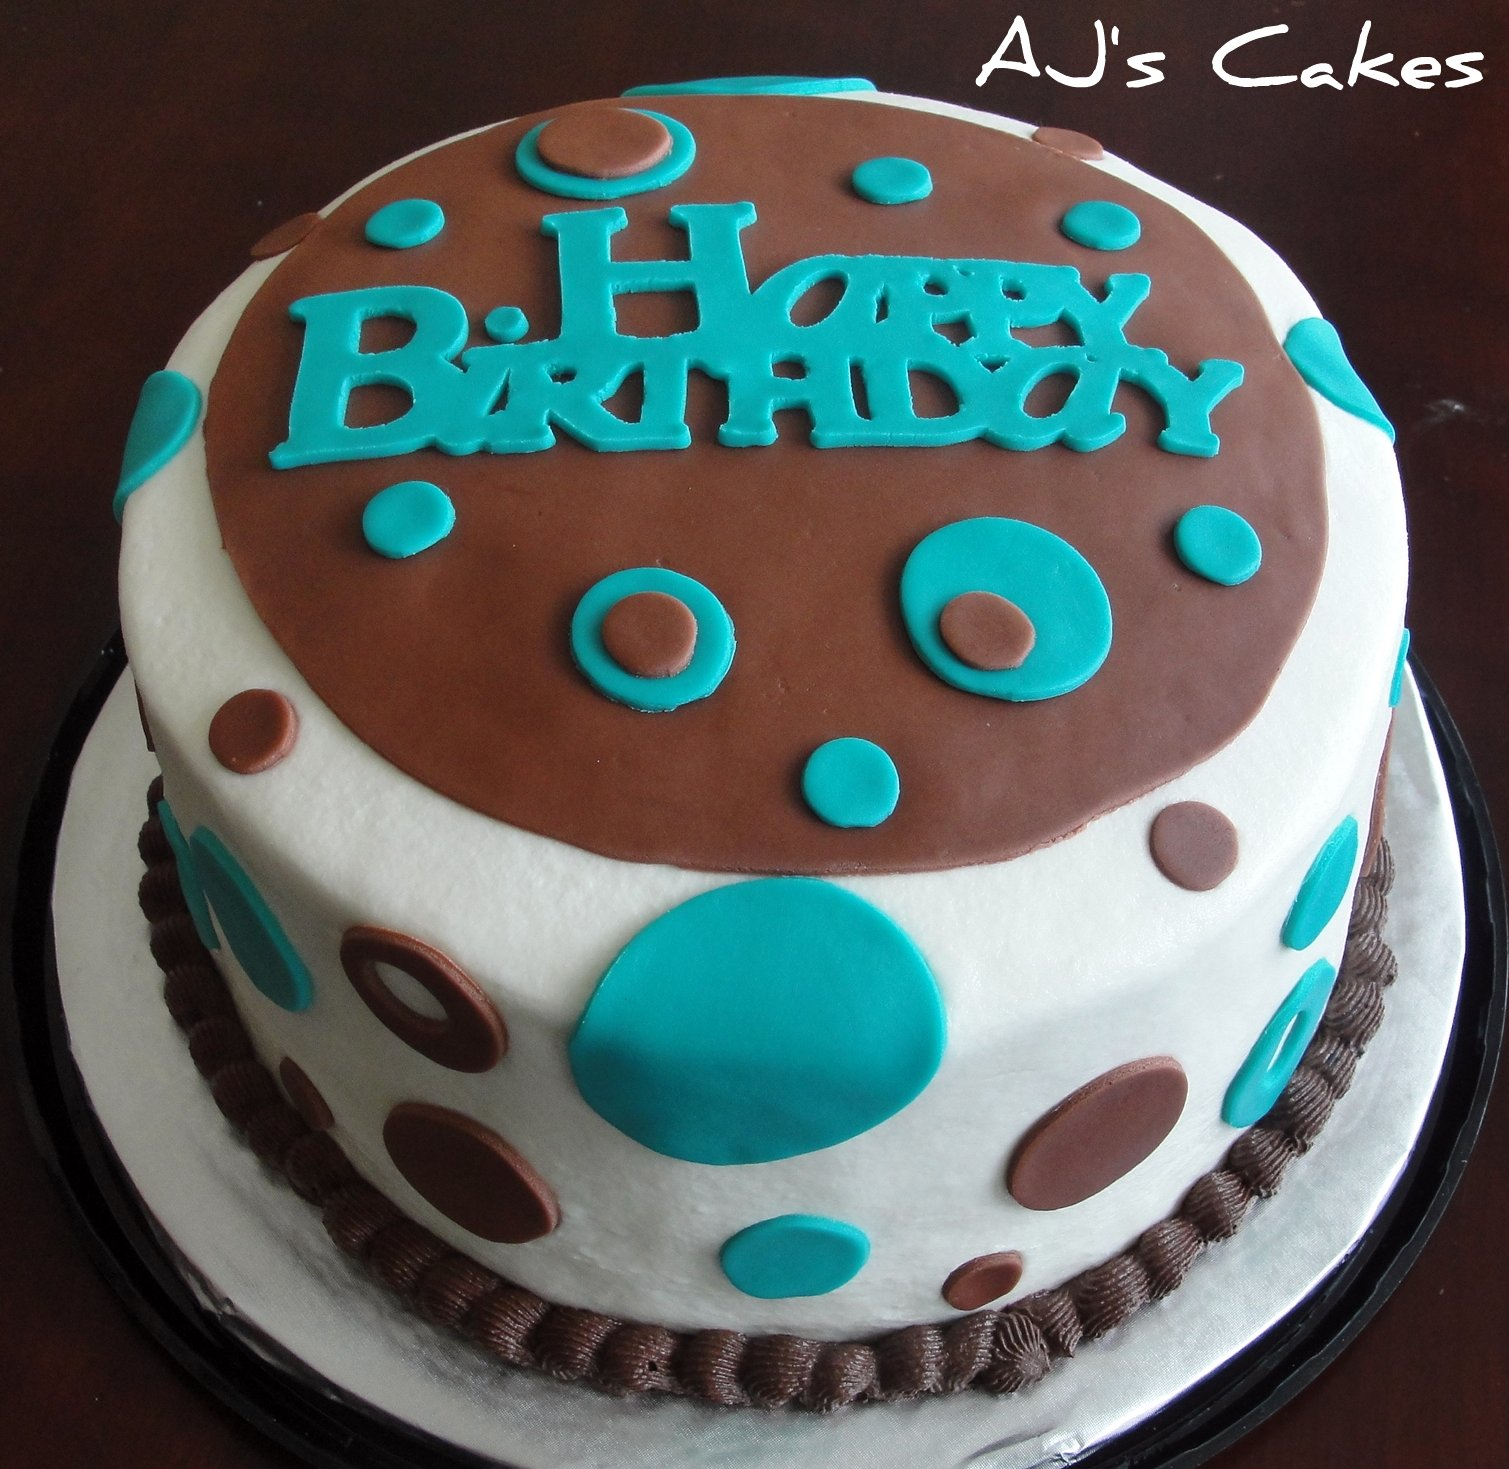 Birthday Cake Art Images : AJ s Cakes: Teal and Brown Birthday Cake